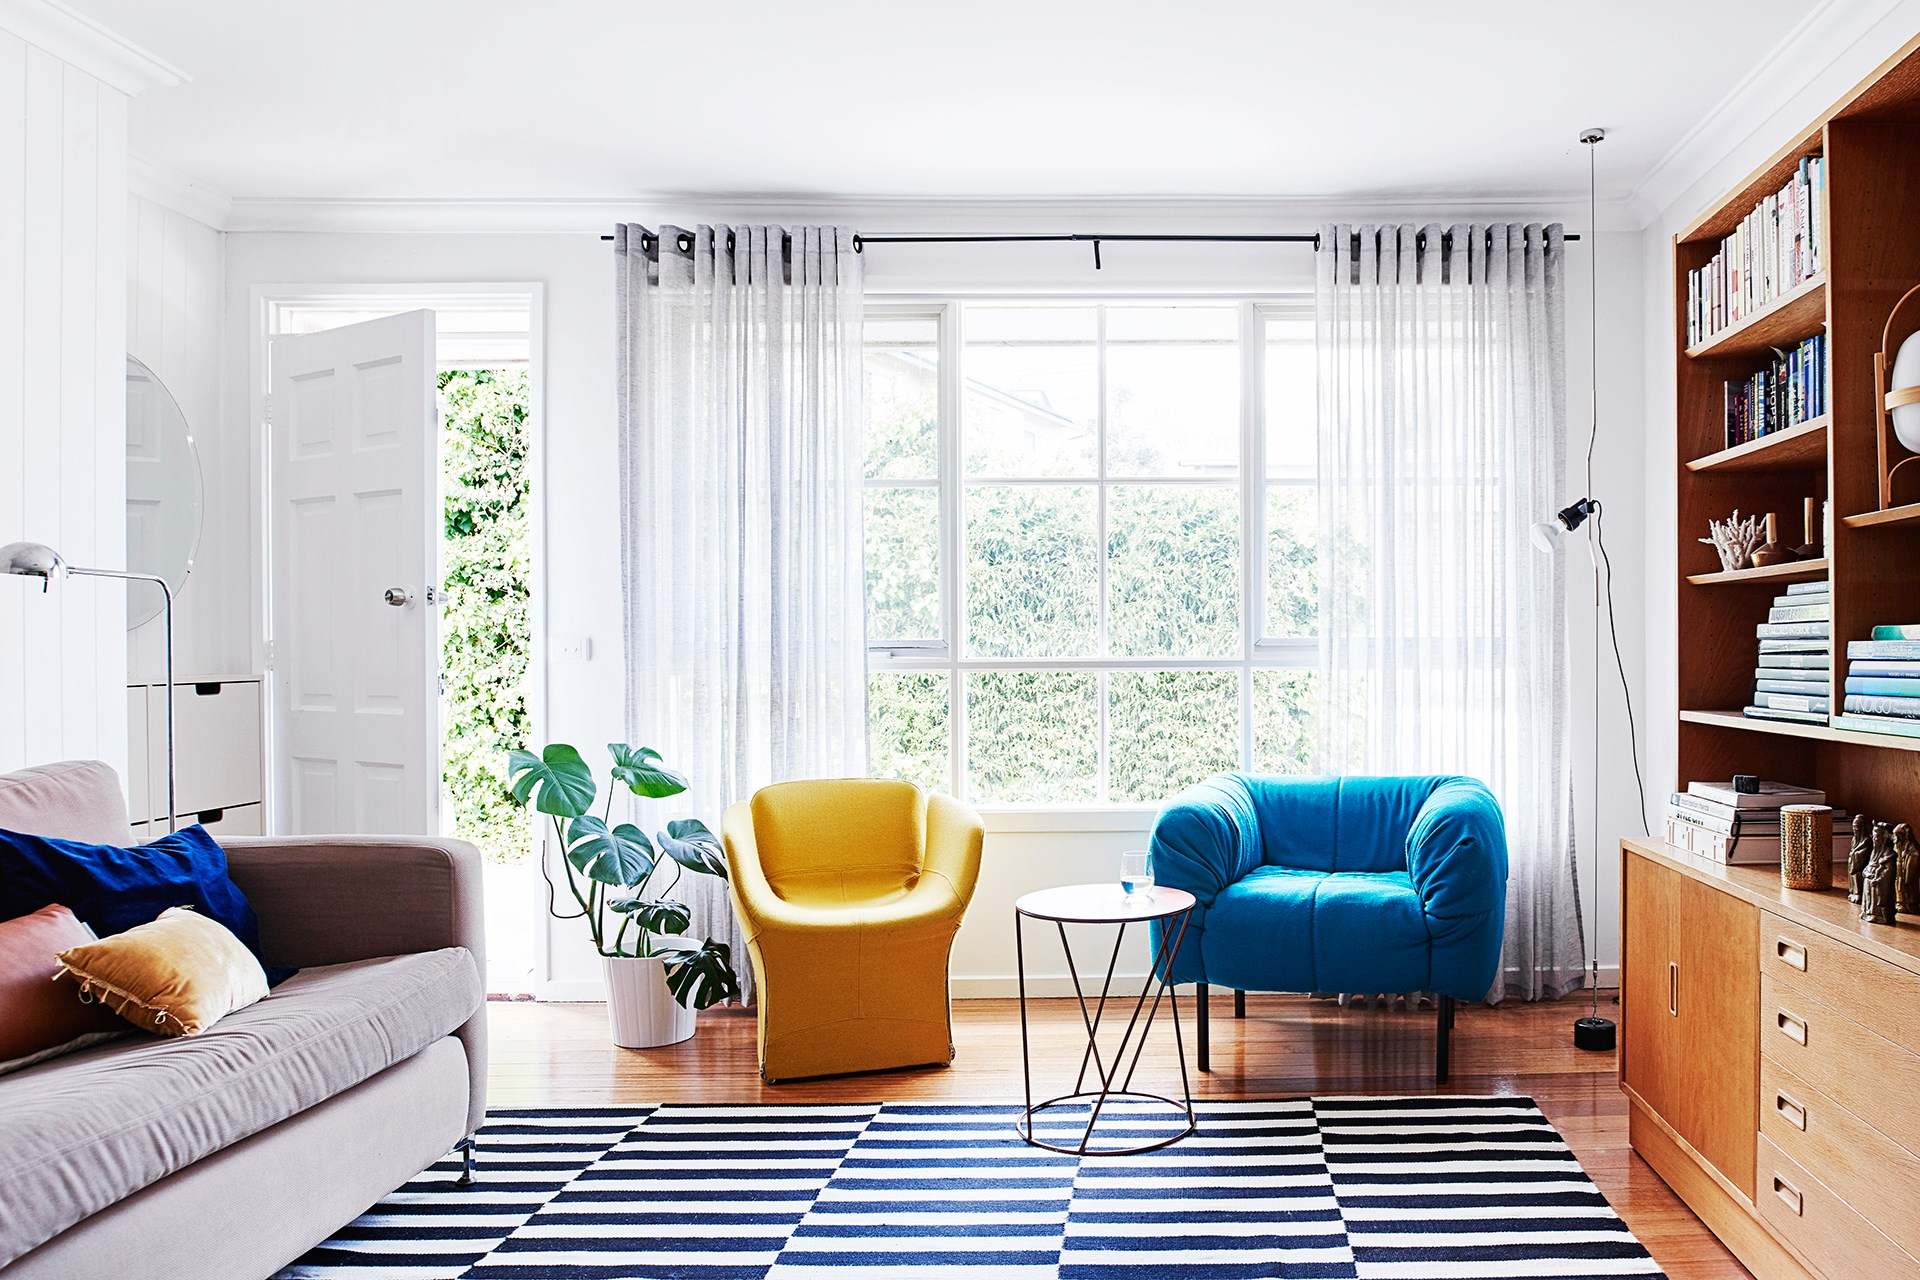 The Swiss cheese plant (Monstera deliciousa) has come full circle and is right on trend in today's home. Photo: Eve Wilson